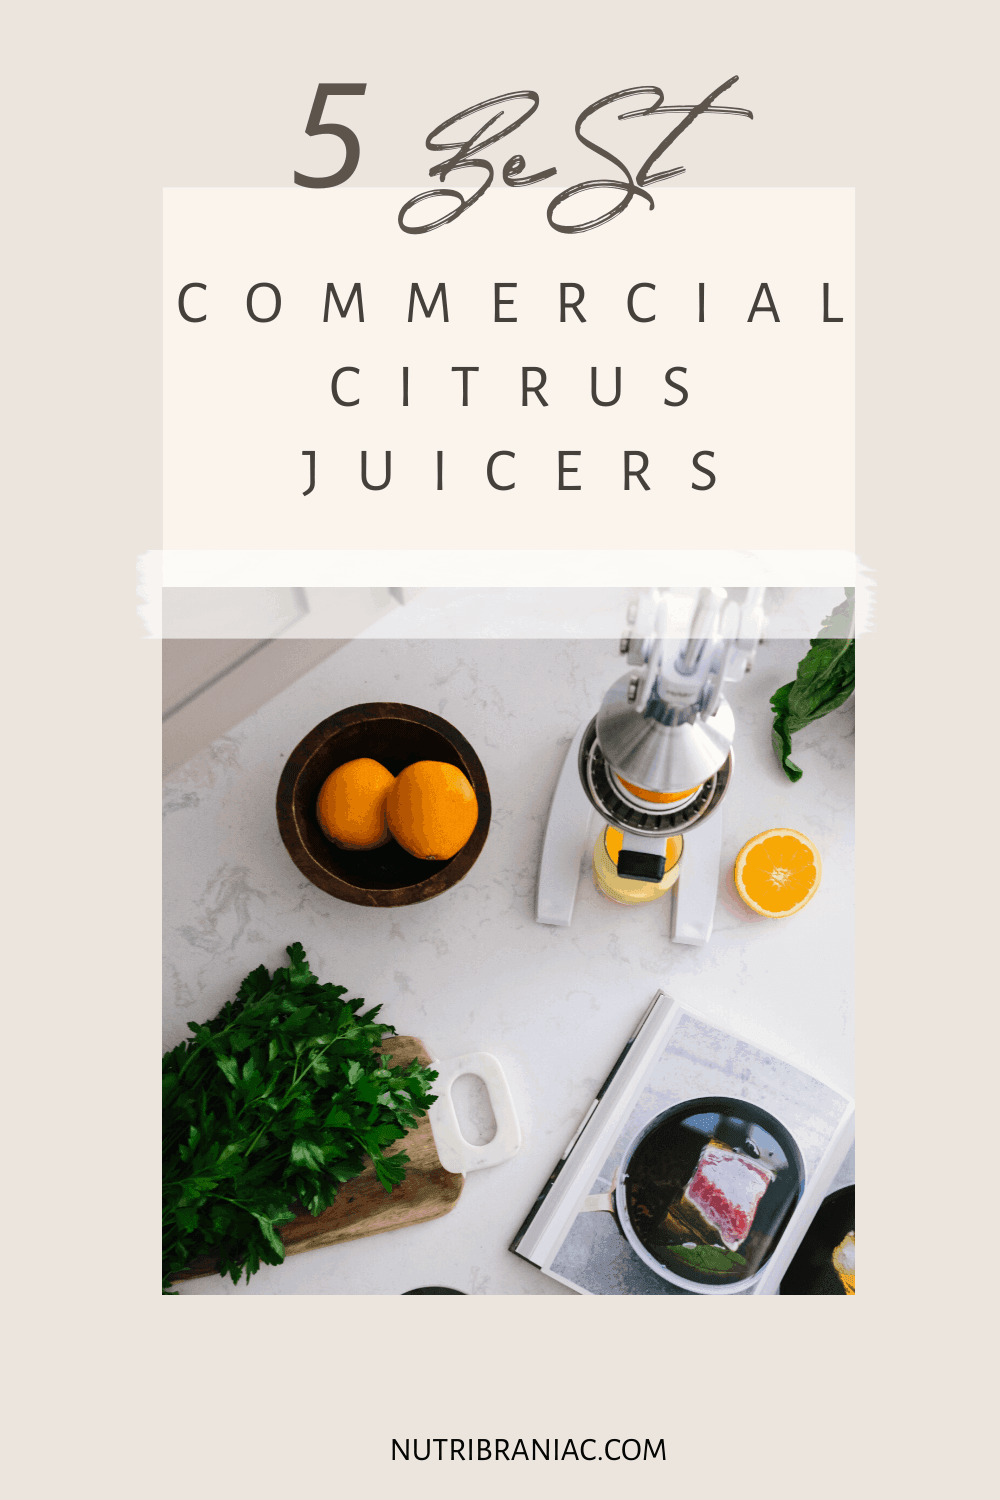 Love fresh orange juice in the morning? Then you need the right citrus juicer.  Whether you own a juice bar or are just juicing at home, the right equipment makes all the difference.  Check out our buyer's guide to the best commercial citrus juicer to get the most out of your juicing recipes.  #bestjuicermachine #juicingforhealth #juicingforbeginners #juicingonabudget #citrusjuicermanual #healthandwellness #bestjuicertobuy